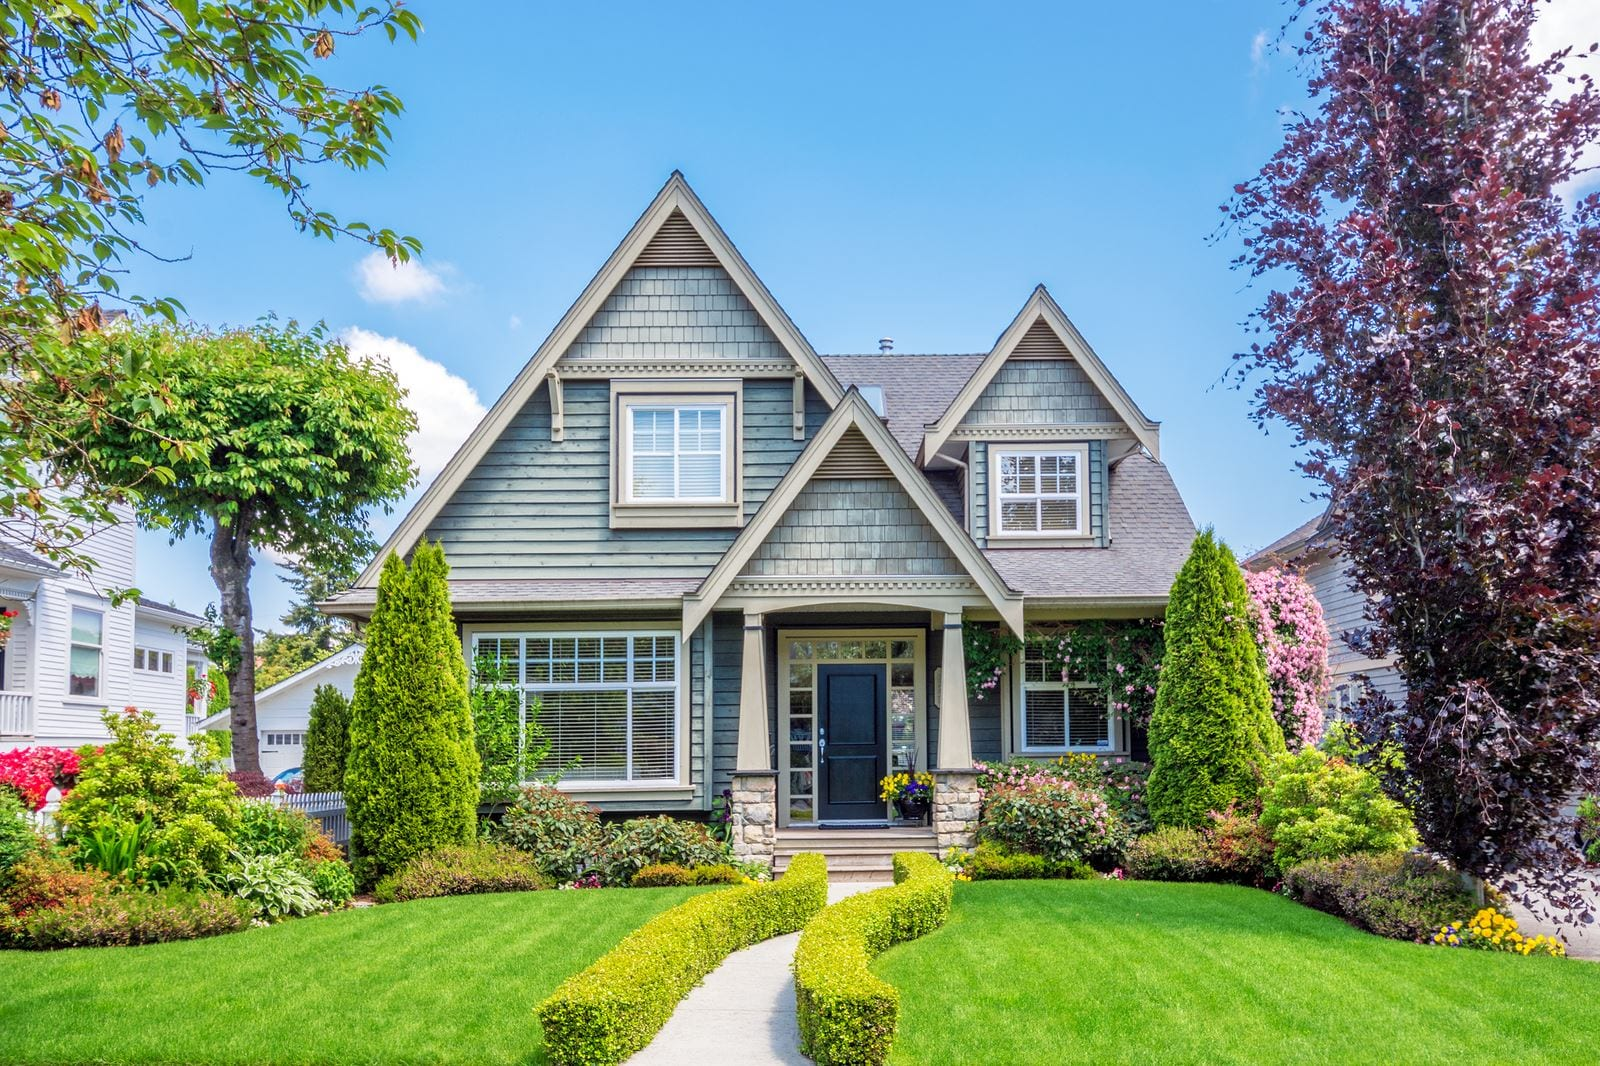 6 Reasons You Need To Invest In Single Family Homes For Sale In 2018 Mashvsior